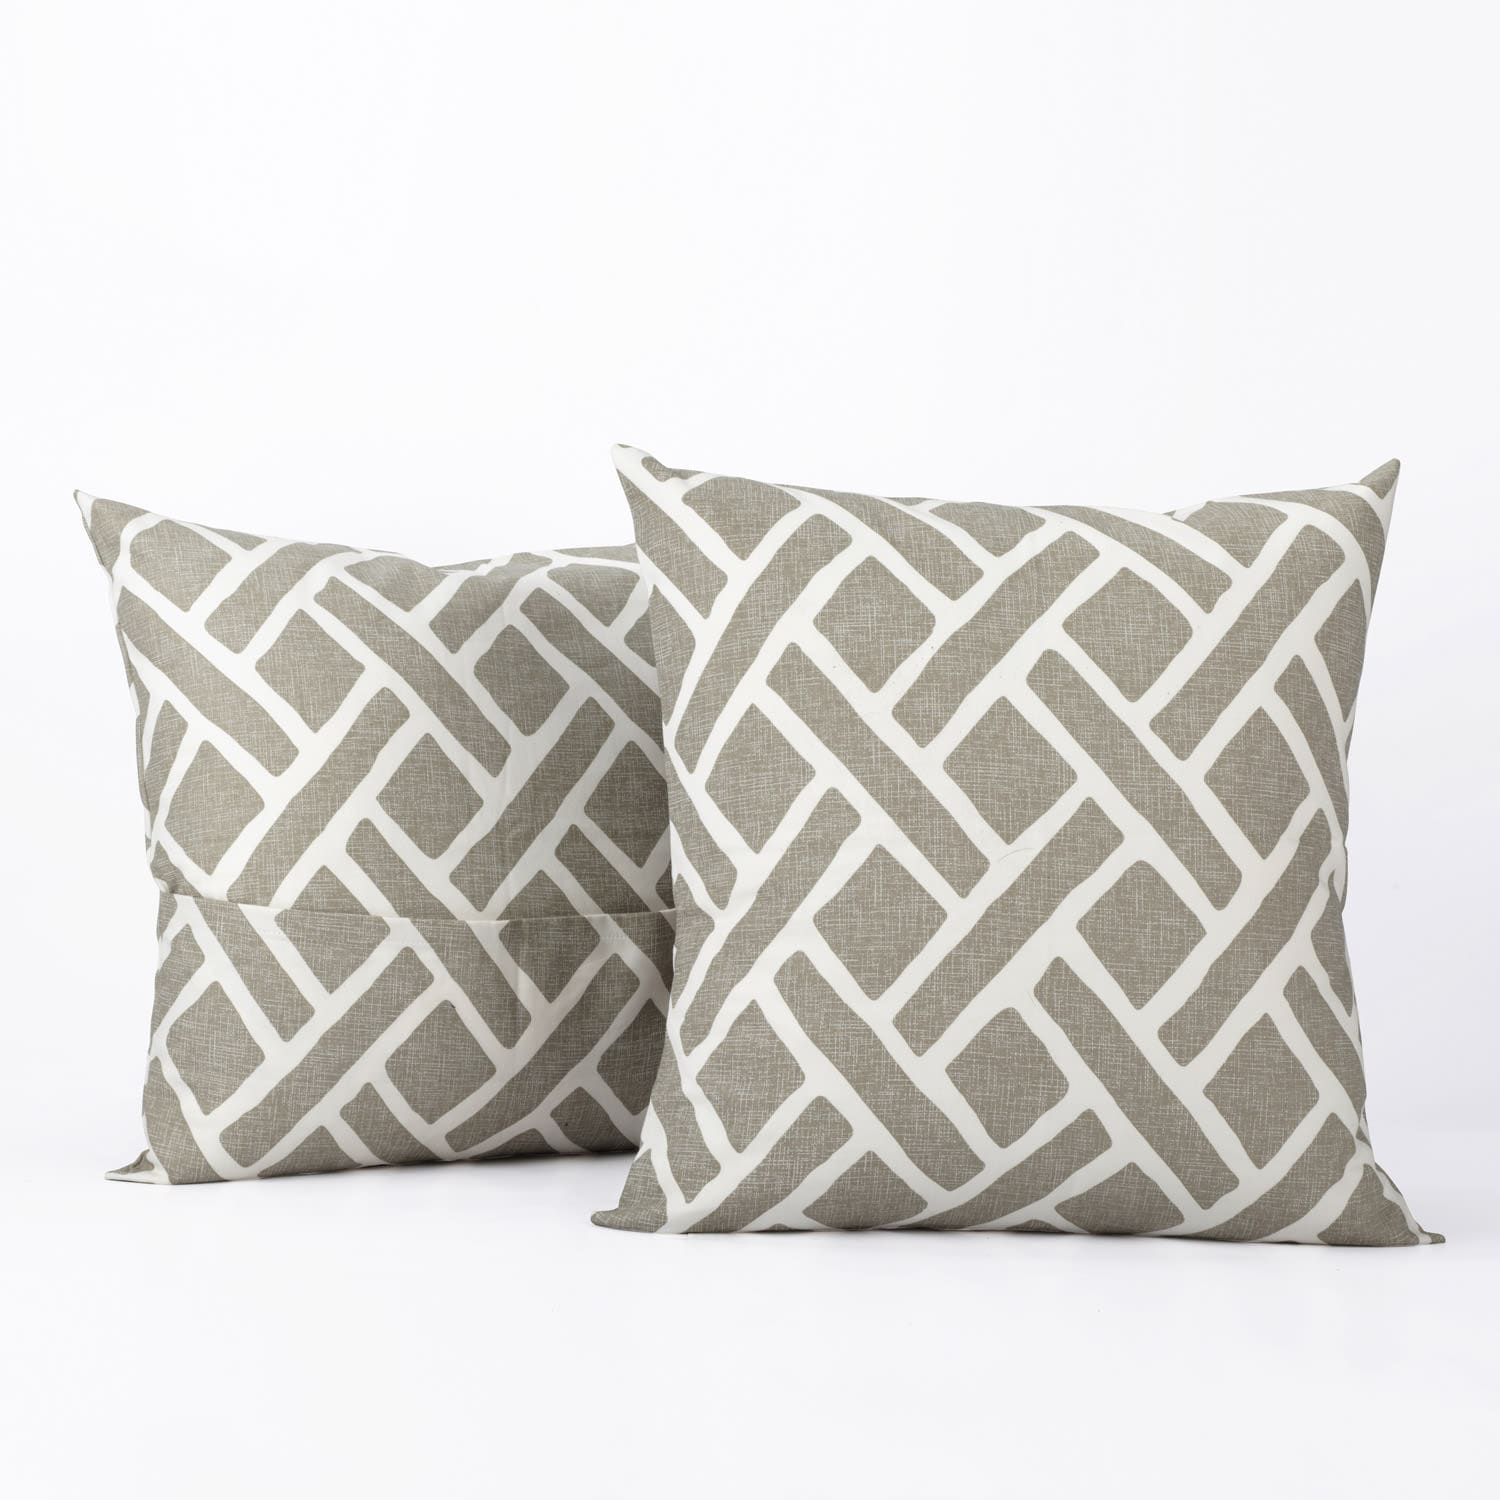 Martinique Taupe Printed Cotton Cushion Covers - PAIR